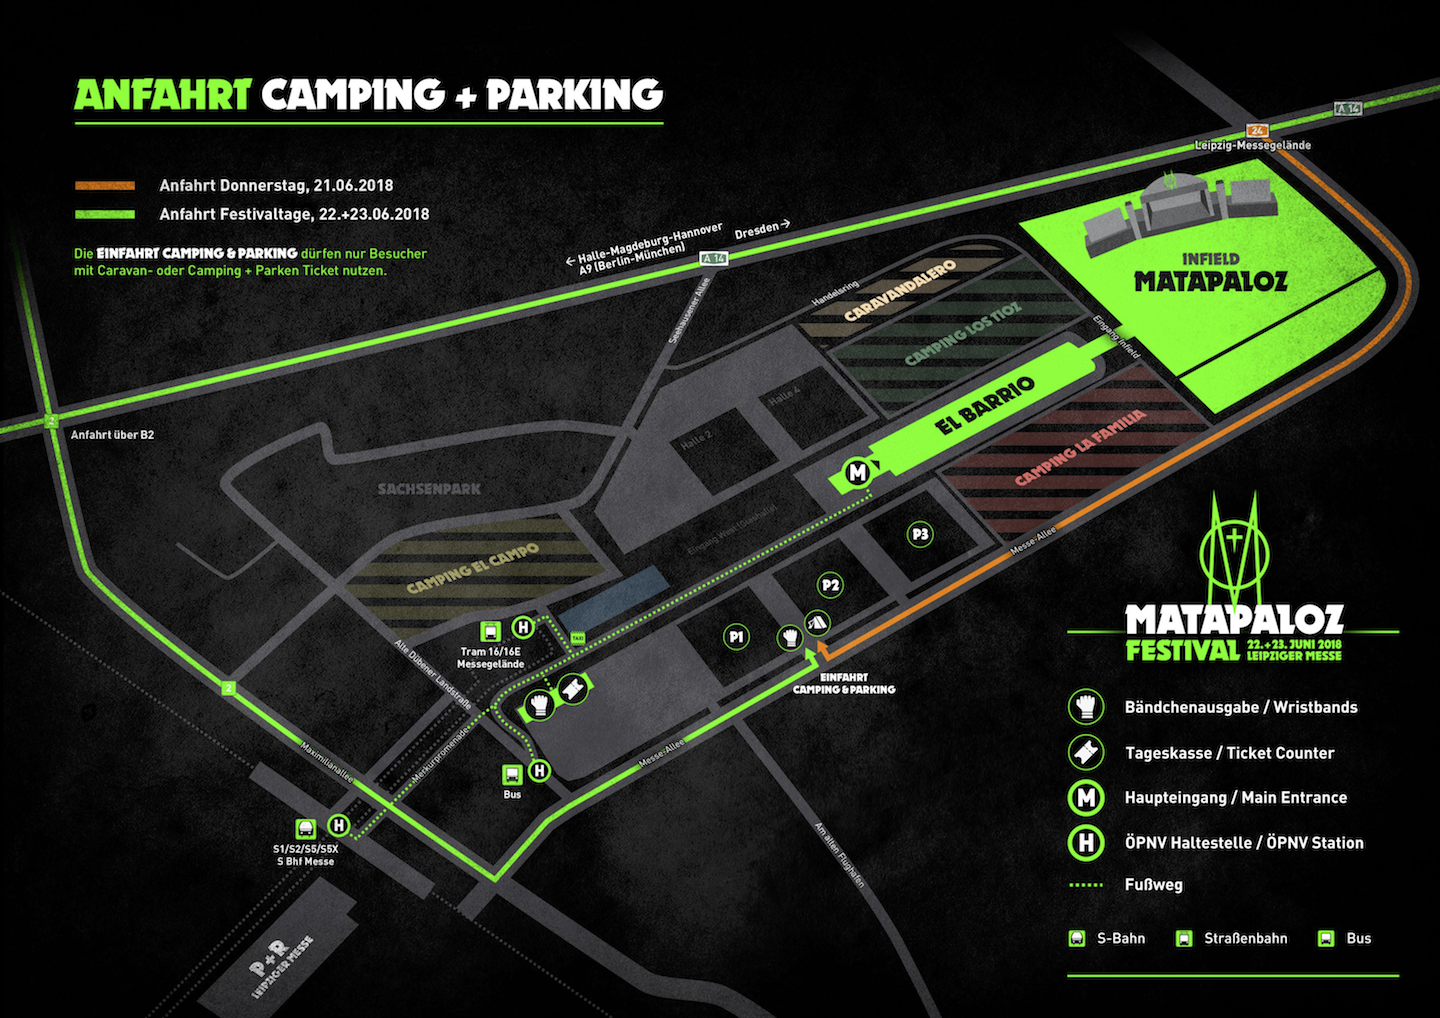 Camping and parking plan